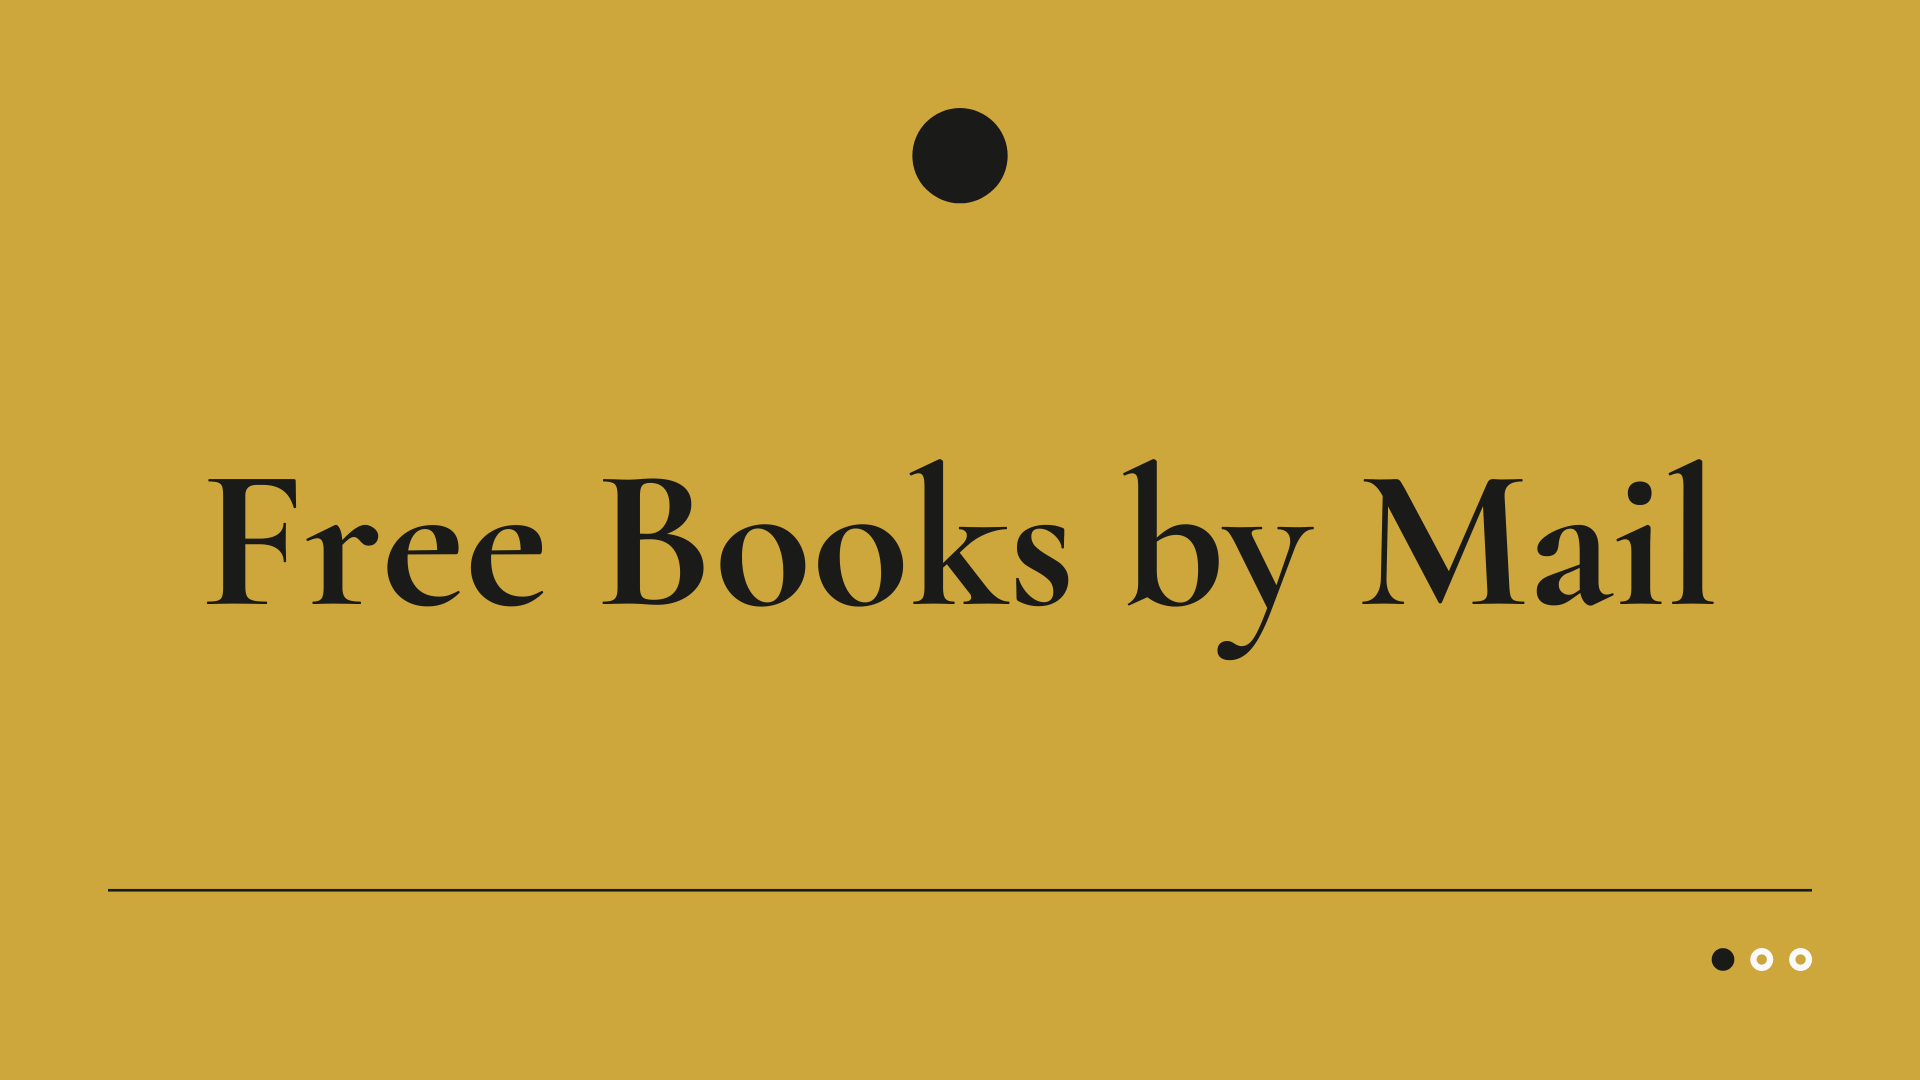 get free books by mail worldwide